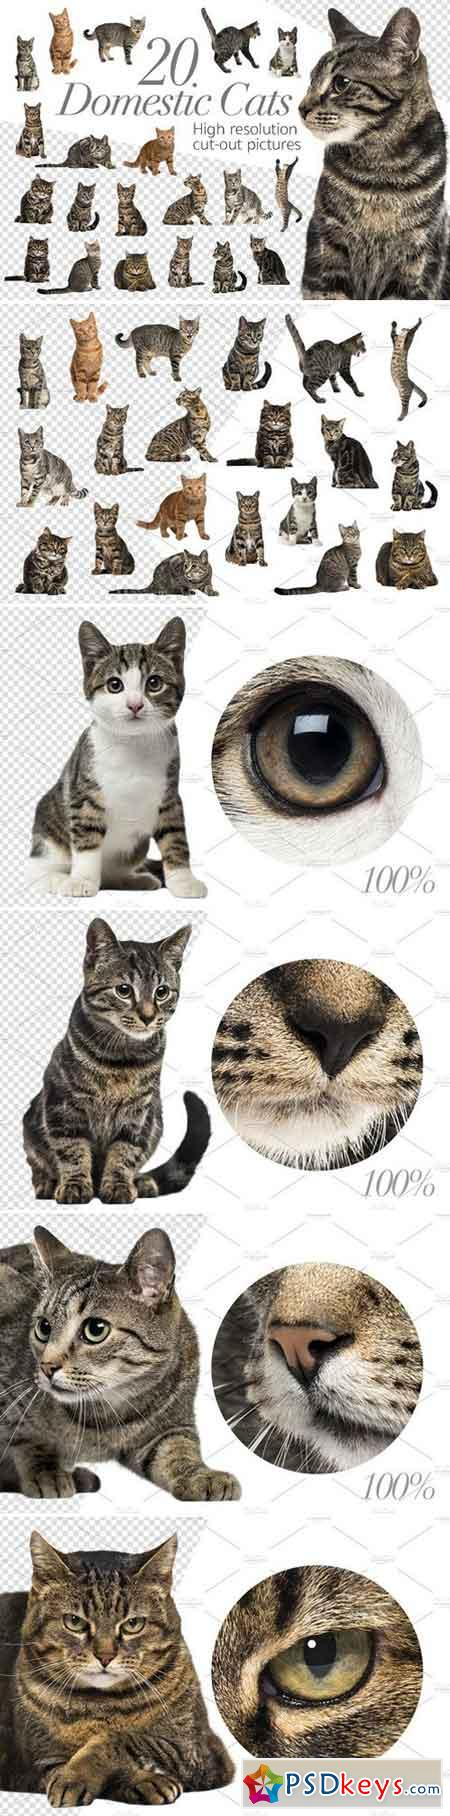 20 Domestic Cats - Cut-out Pictures 2316524